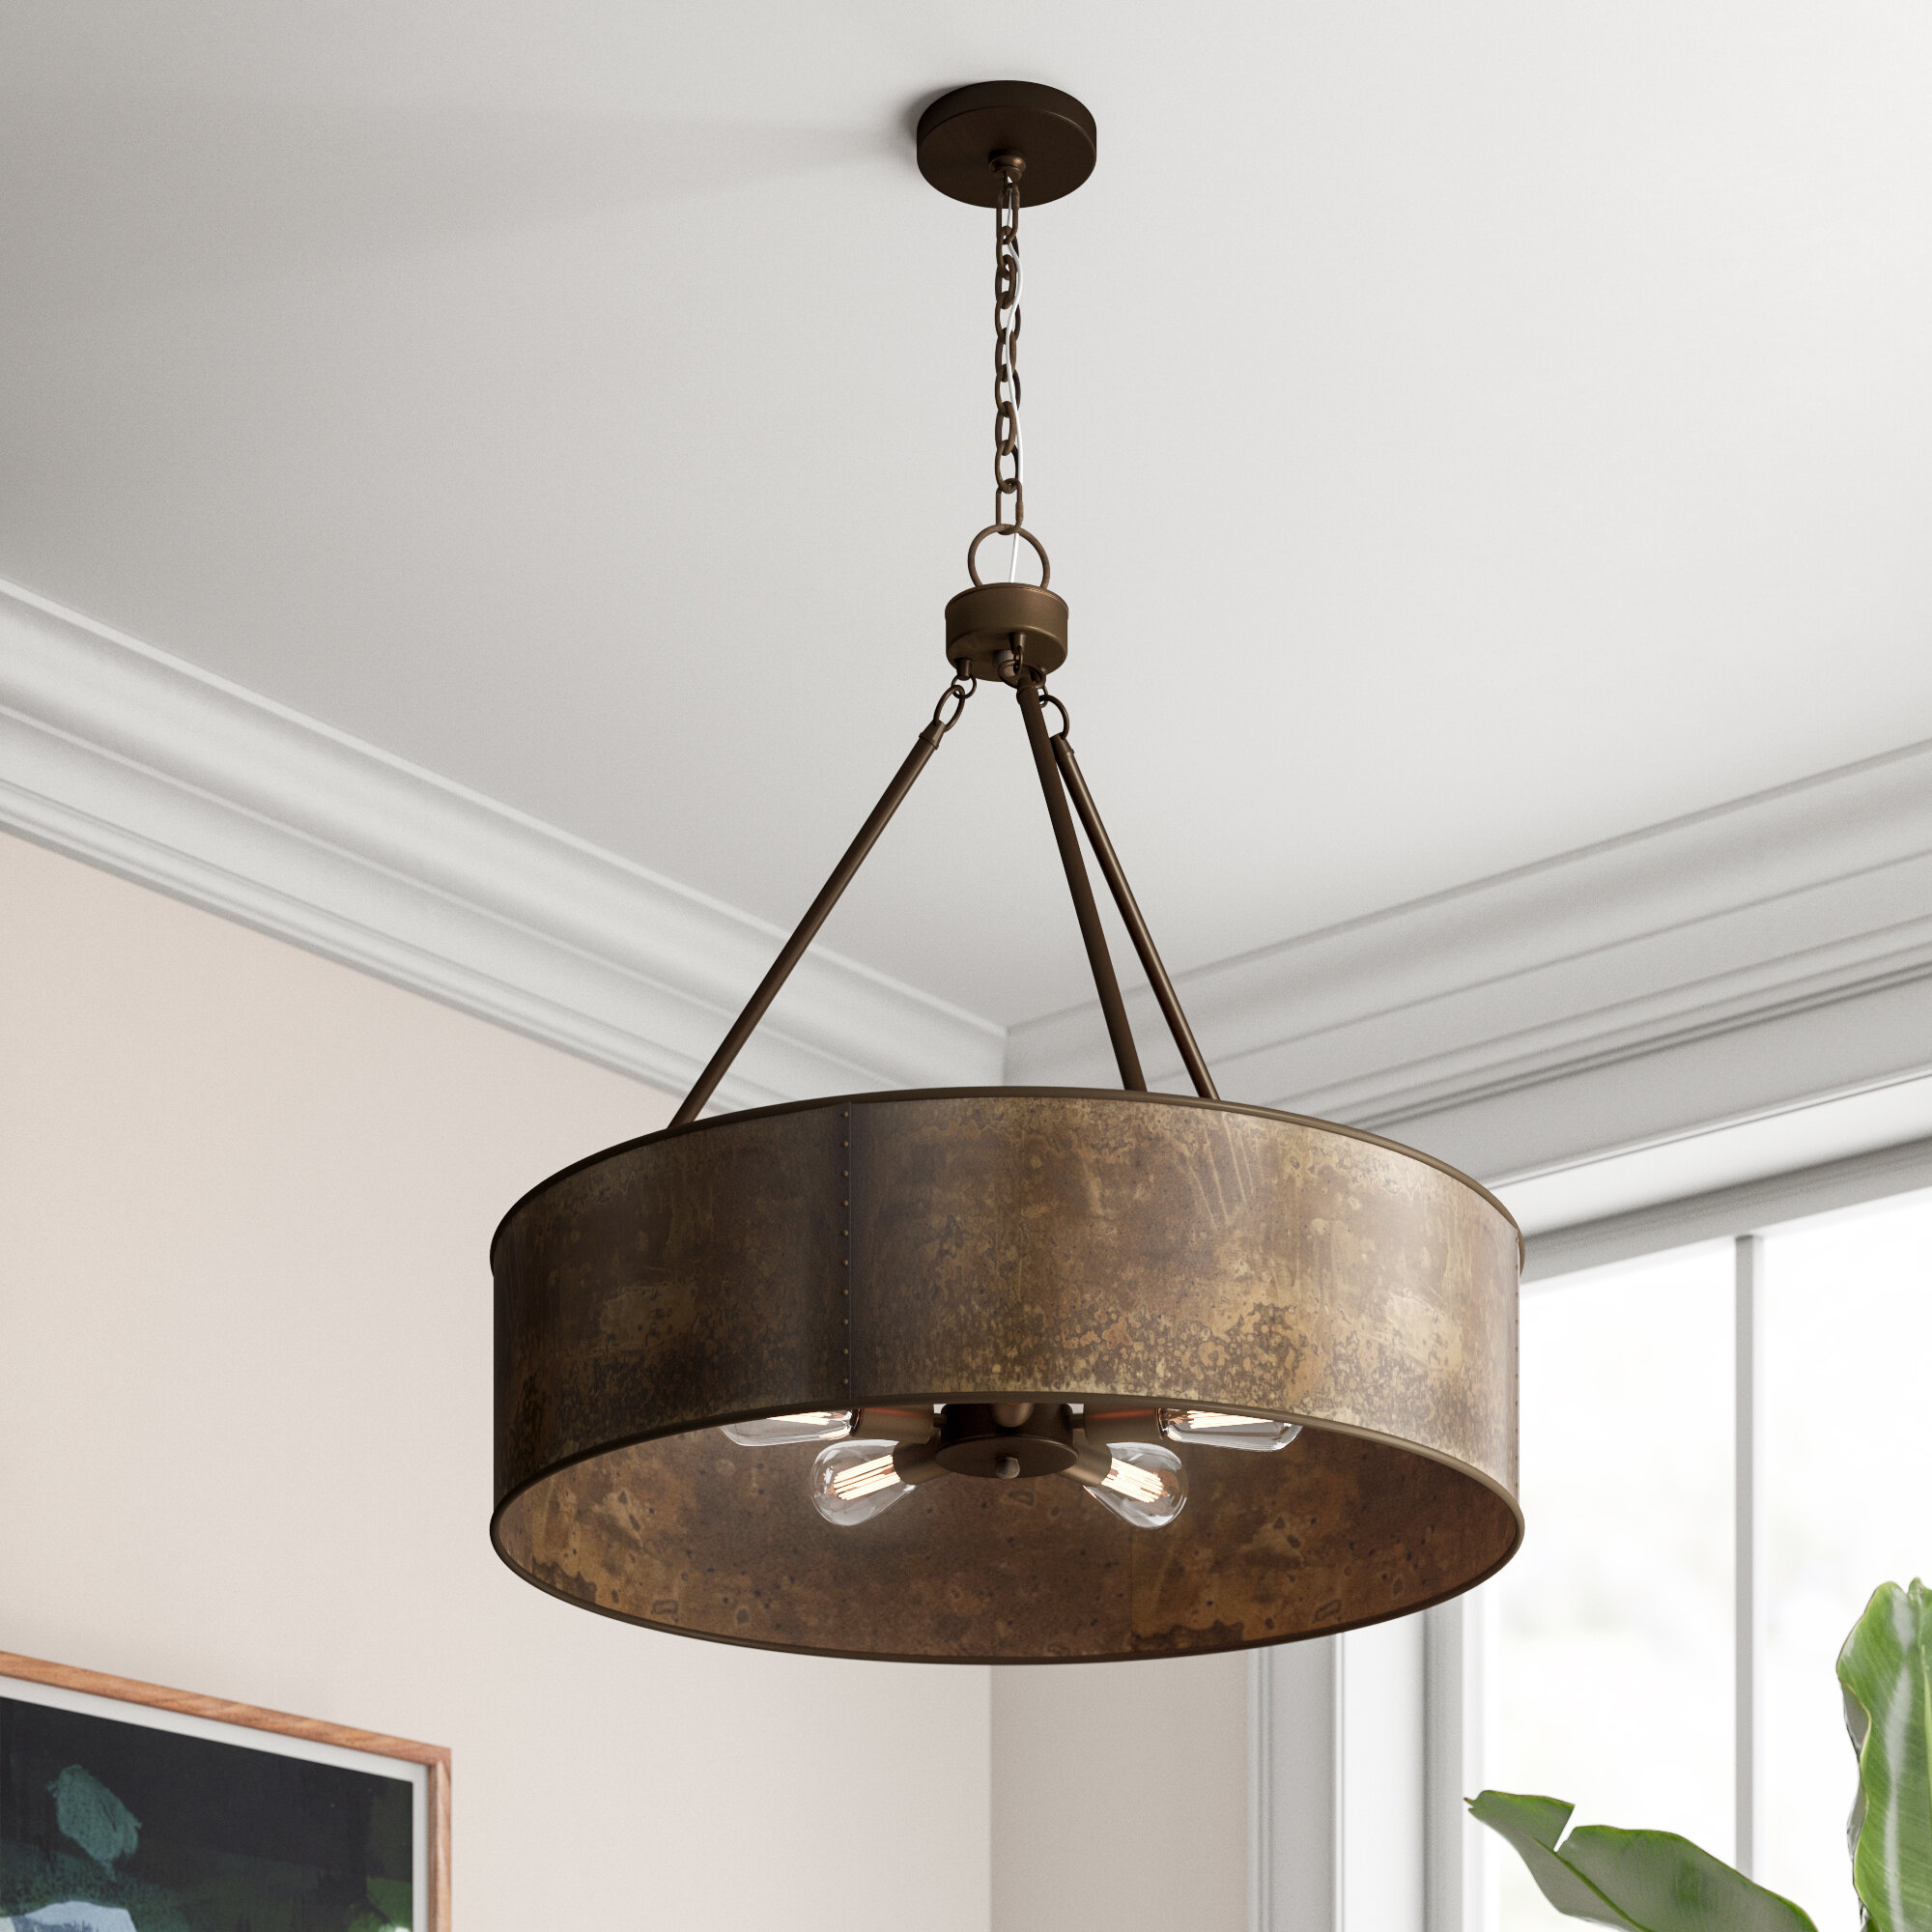 Vincent 5-Light Drum Chandelier & Reviews | Joss & Main regarding Montes 3-Light Drum Chandeliers (Image 25 of 30)